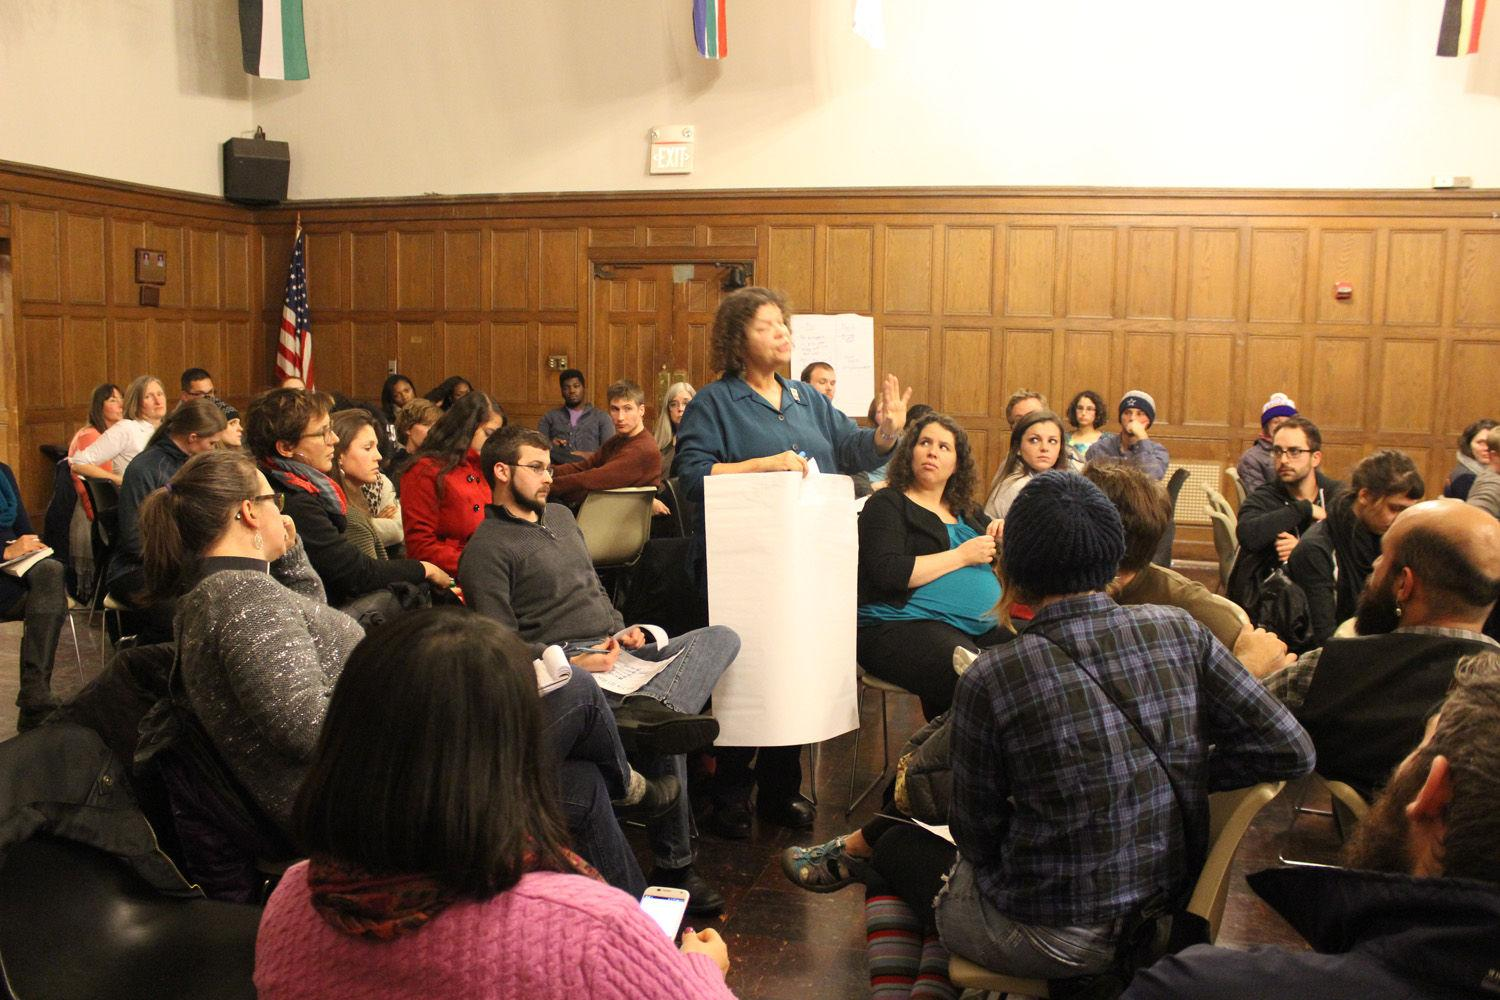 A faculty member shares the highlights her group discussed and explained their choice not to take notes.